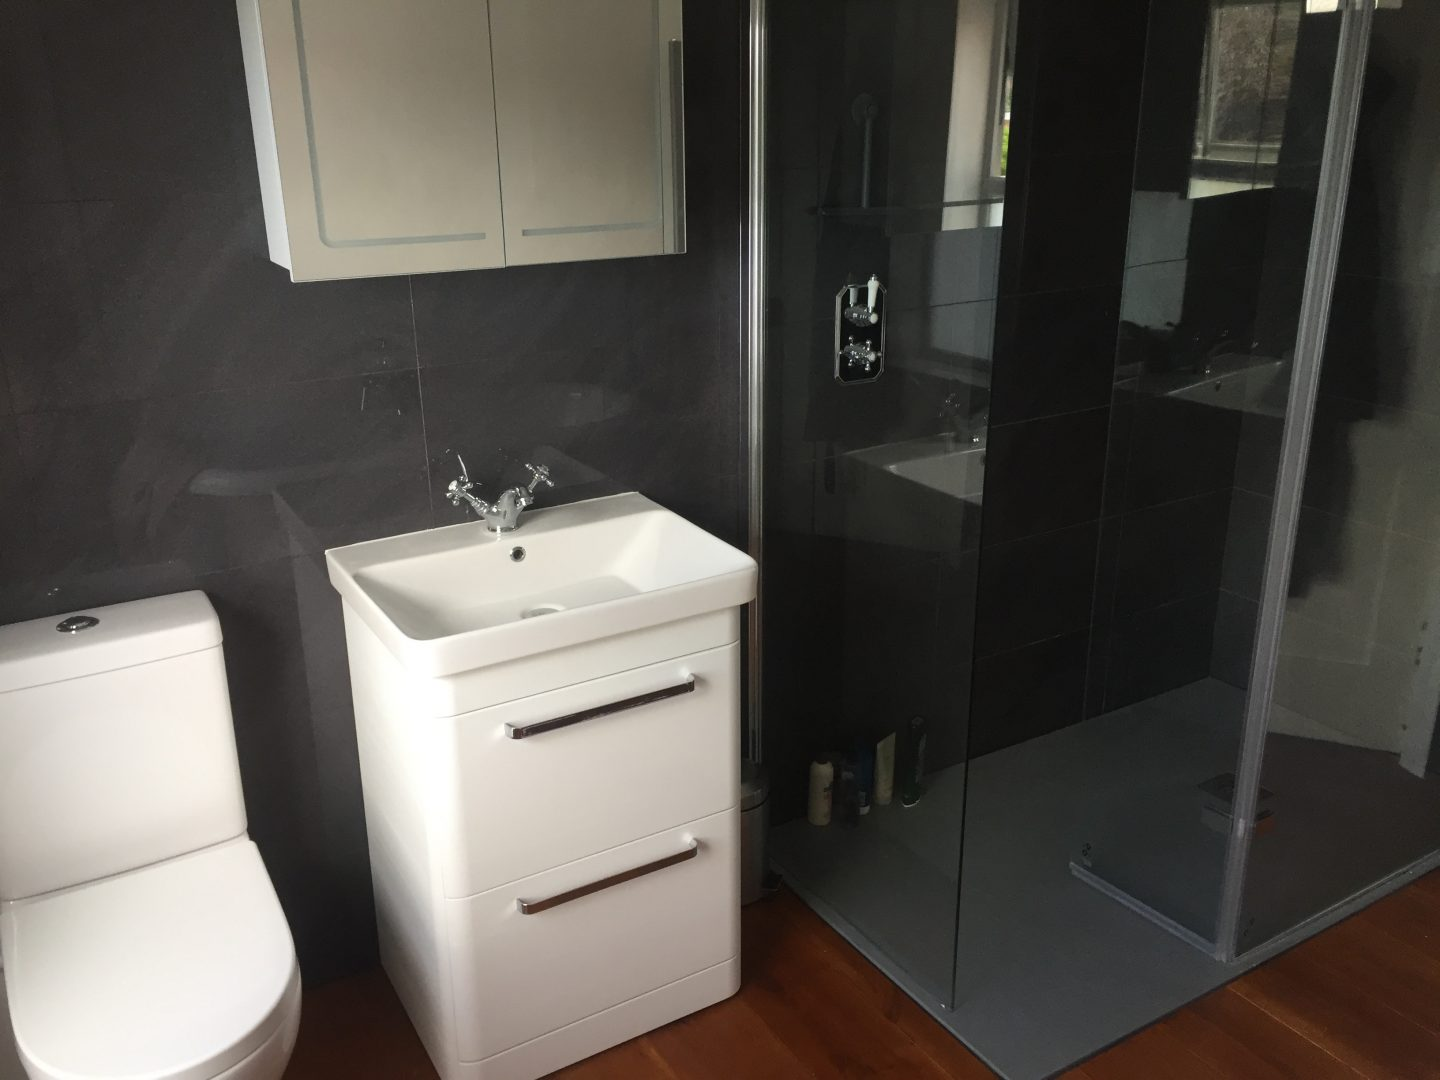 Renovation Update #3: Our Bathroom